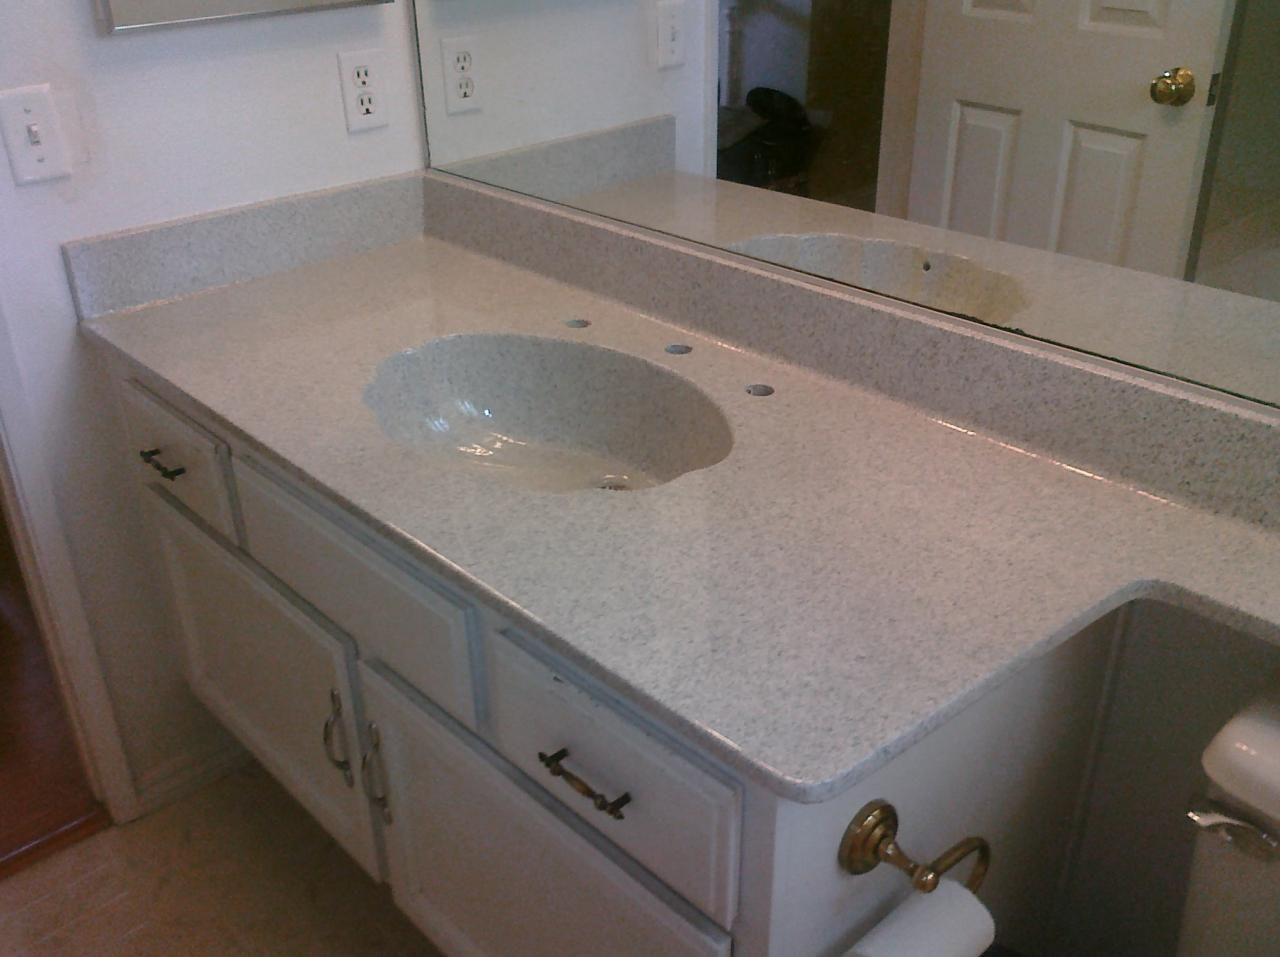 PKB Reglazing : Cultured Marble Countertop U0026 Sink Combo Reglazed Travertine  Speckled